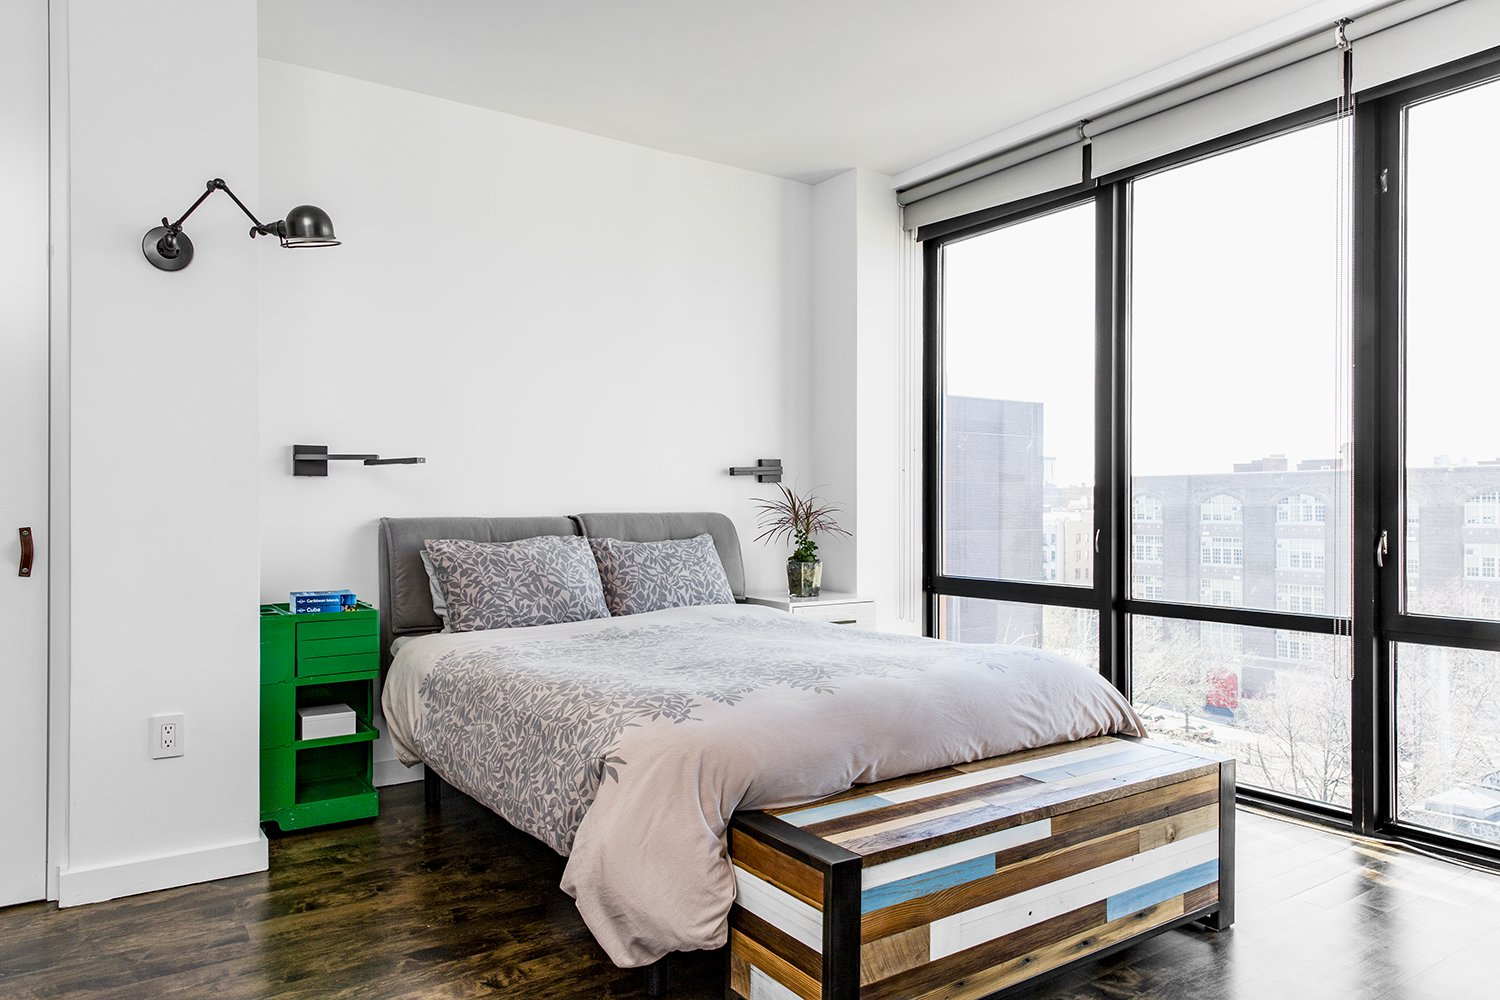 Bedroom, Bed, and Wall Lighting  Heavy Metal by James Wagman Architect